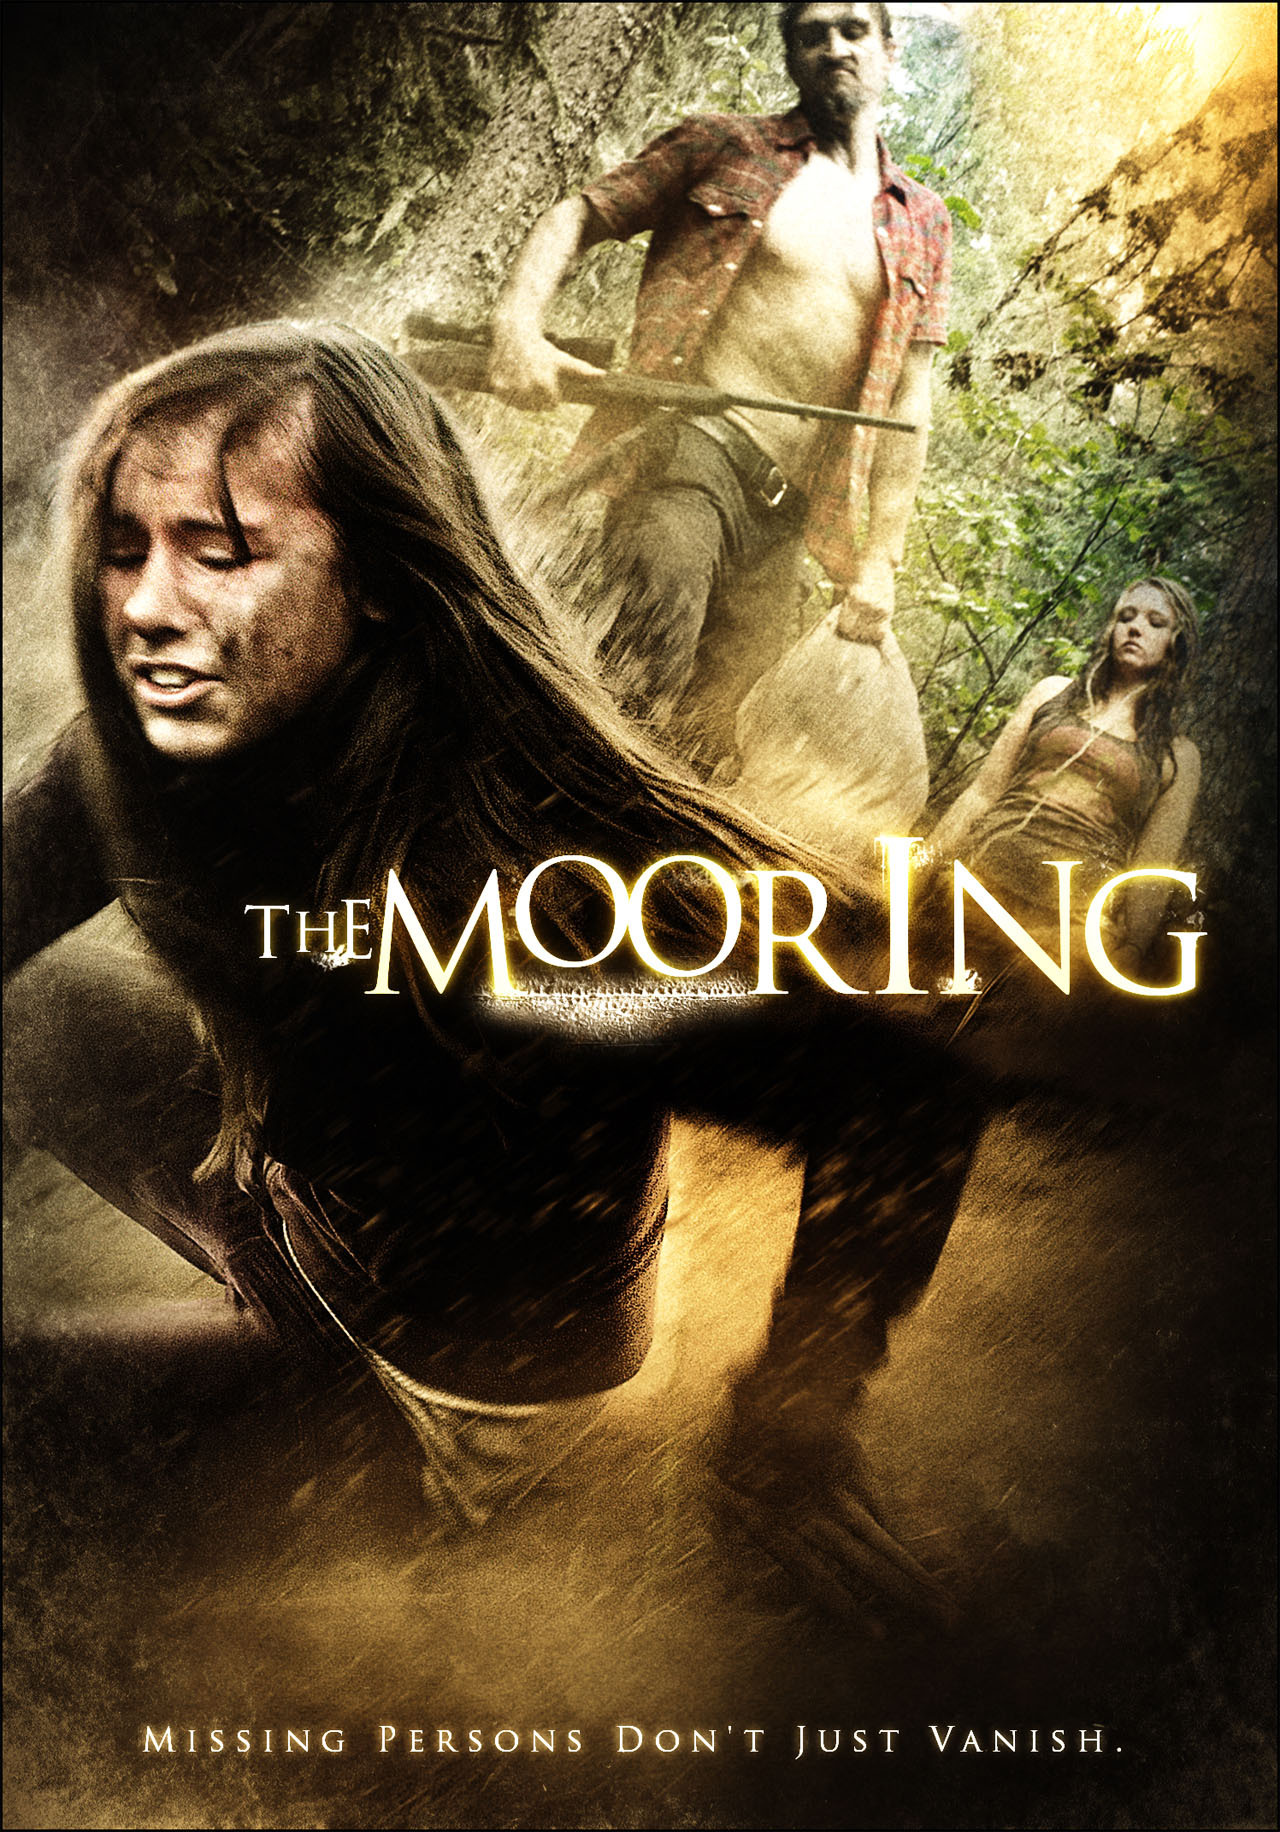 The Mooring hd on soap2day